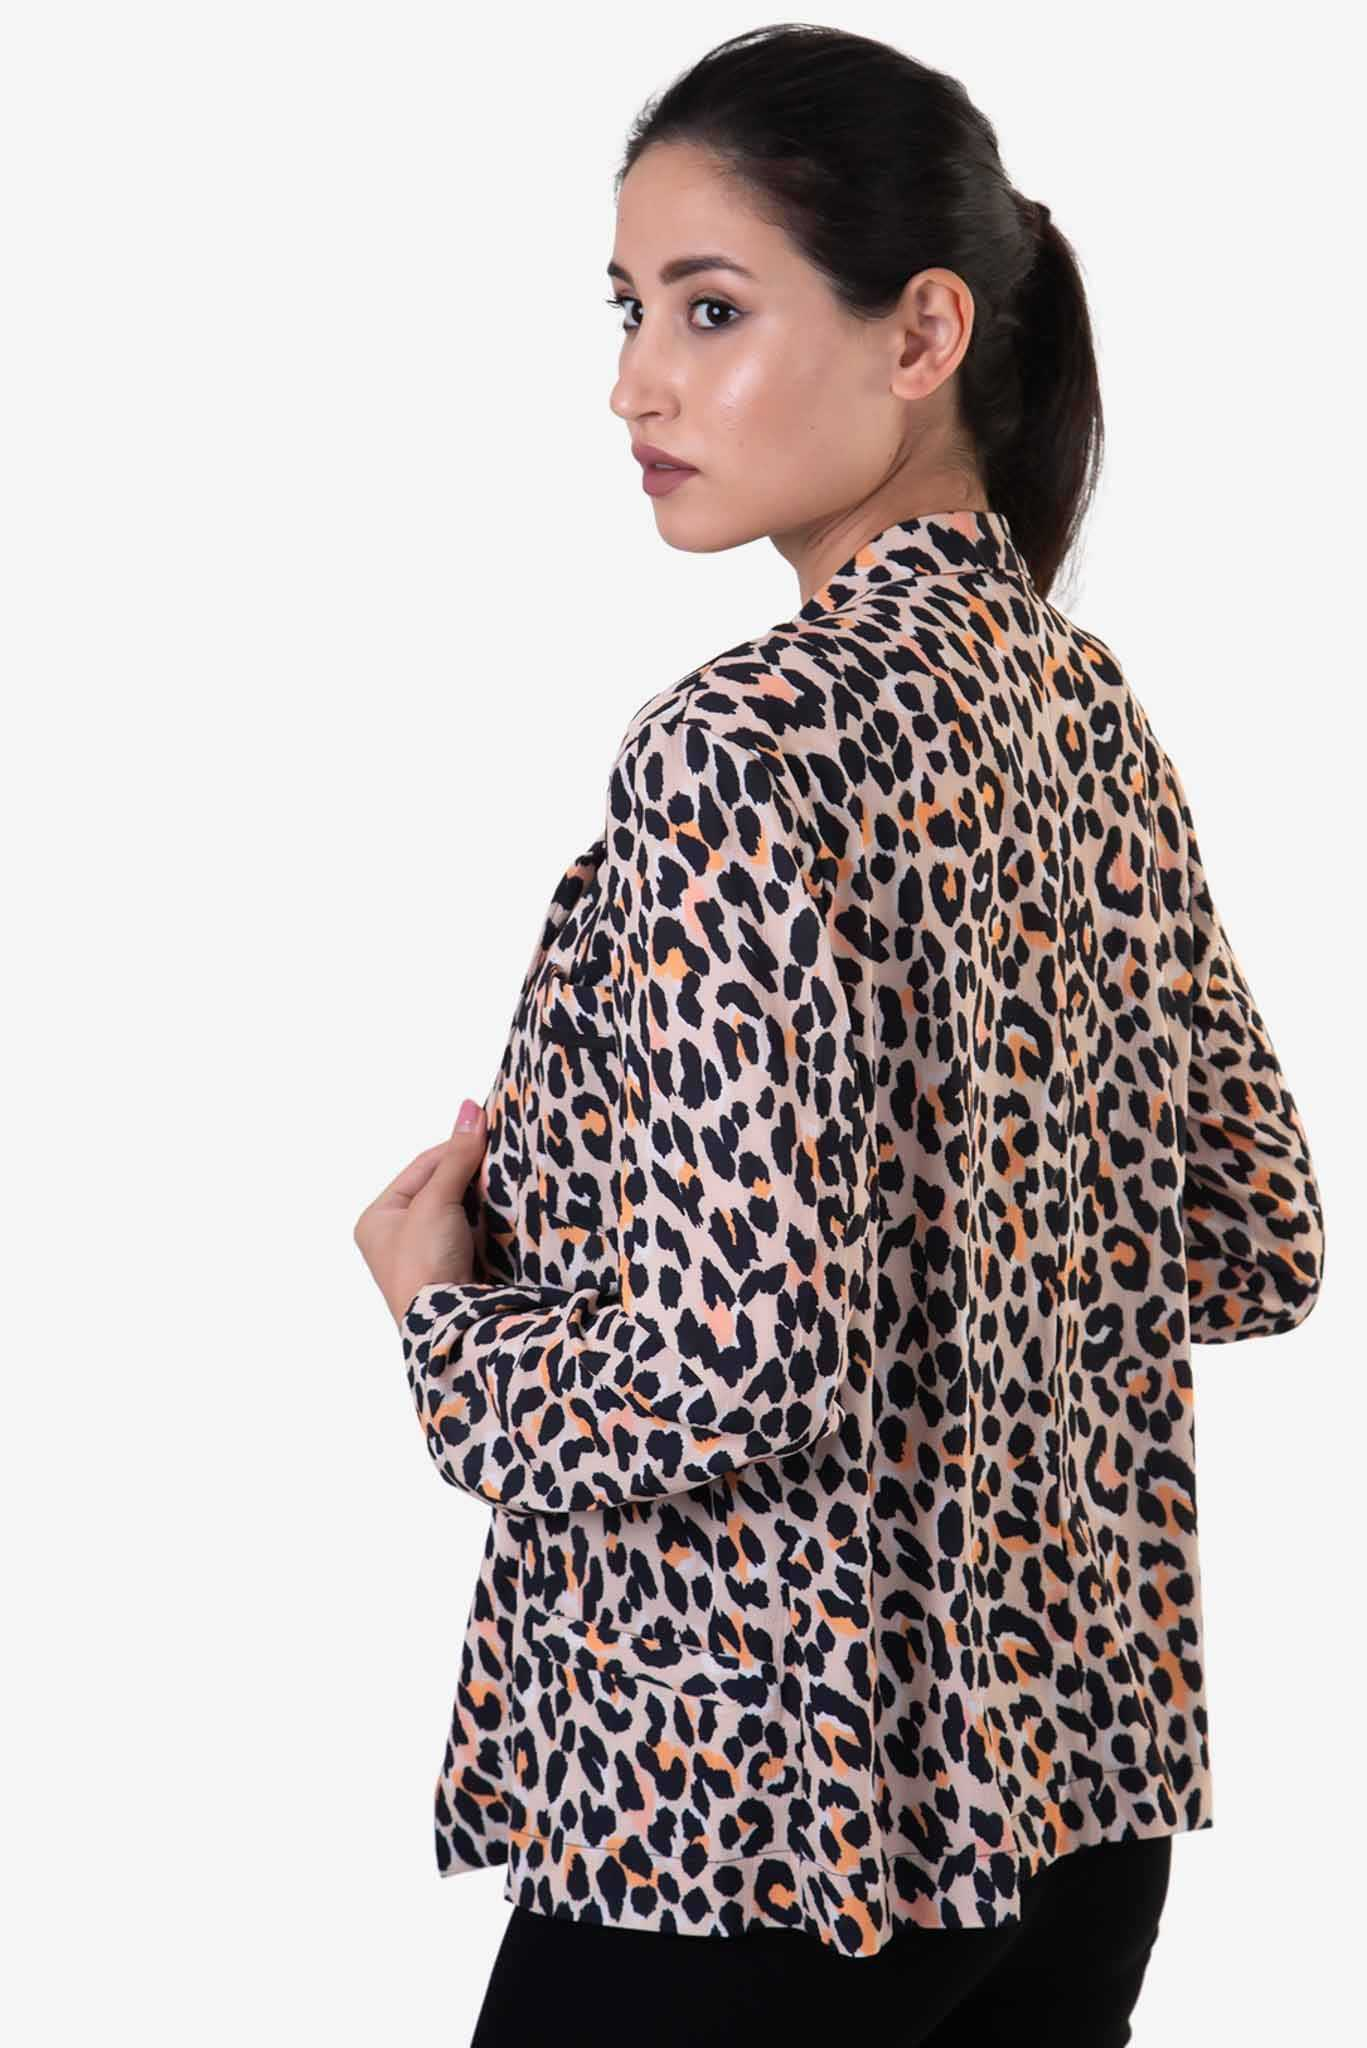 Blazer - Cheetah Print | Raw Orange